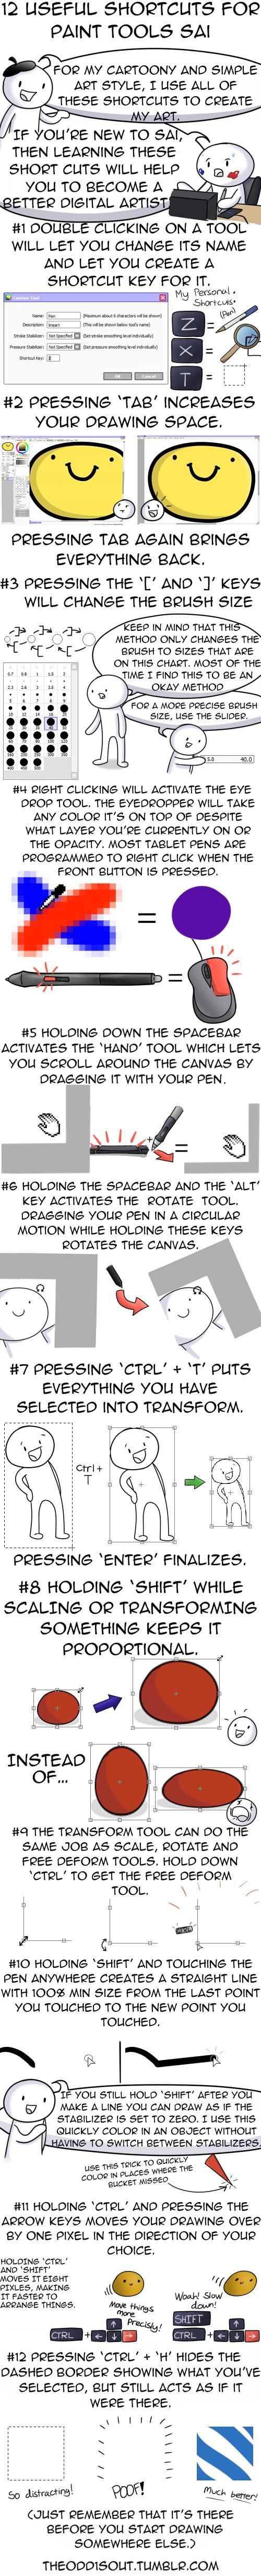 Tips/Introduction to SAI Painter  Source: http://theodd1sout.tumblr.com/post/60806305634/when-i-was-trying-to-figure-out-paint-tools-sai-i